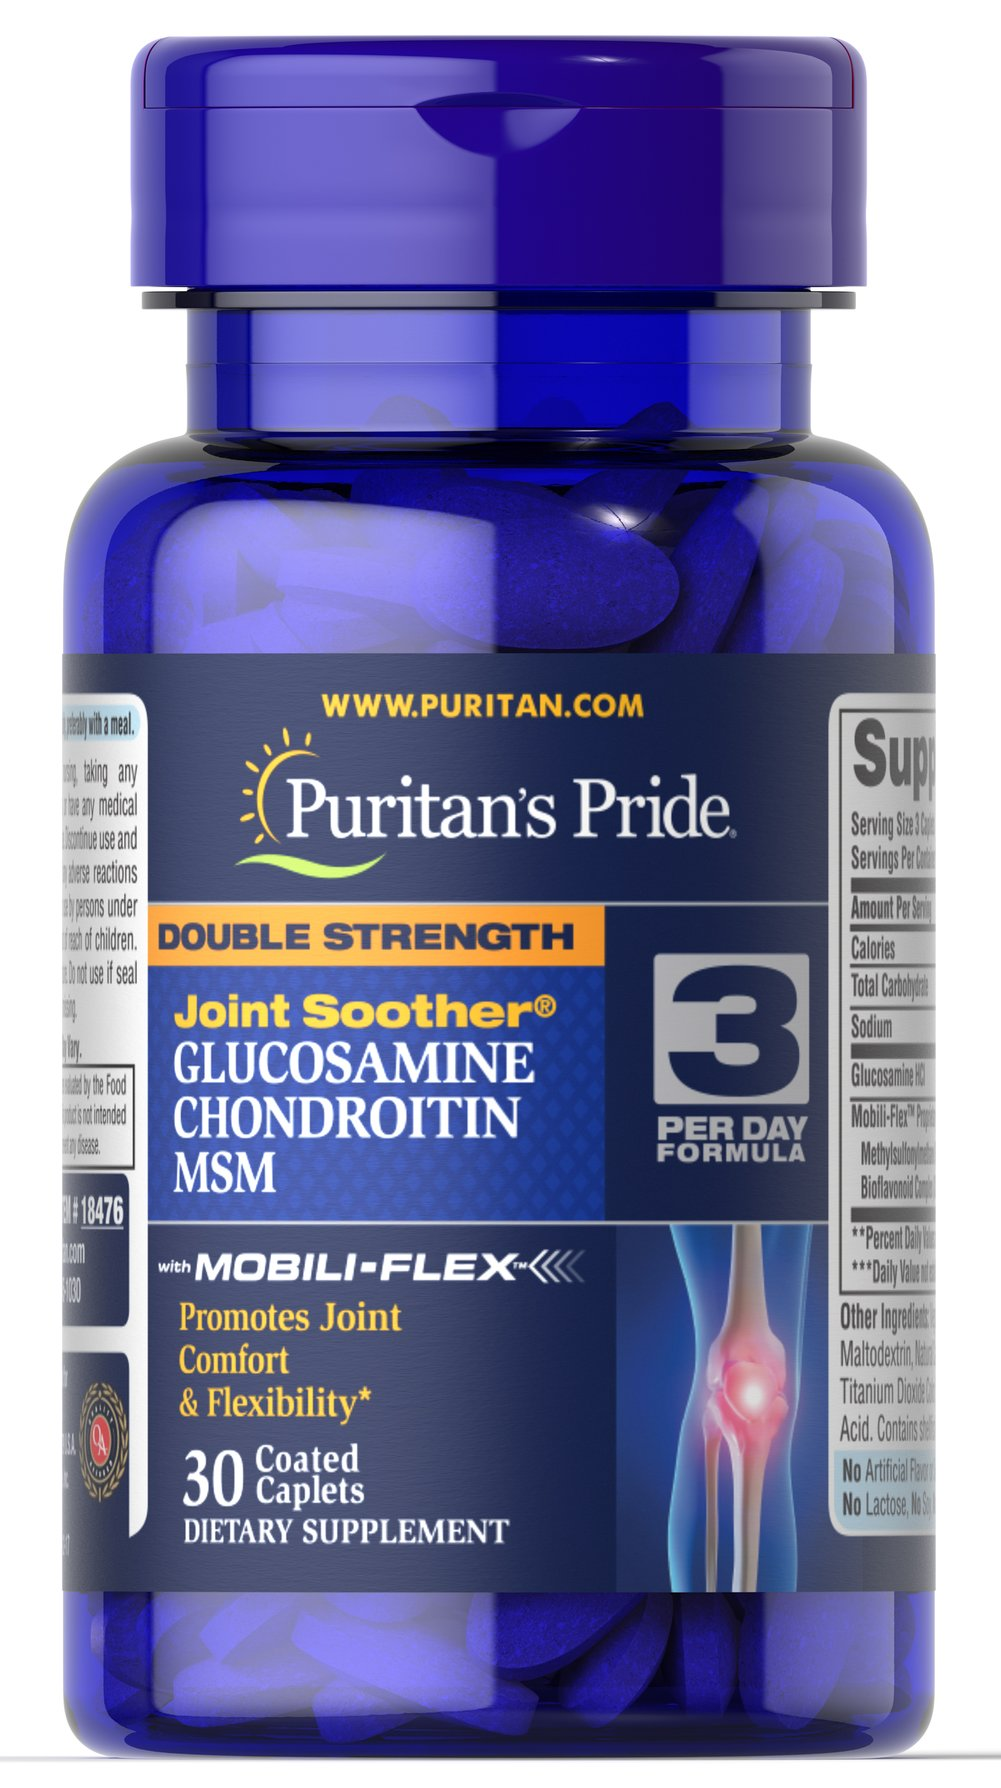 "Double Strength Glucosamine, Chondroitin & MSM Joint Soother® <p>Give your joints a taste of one of the most popular formulas for joint health support.**</p><p><span></span>The combination of Glucosamine, Chondroitin, and MSM help to nutritionally <a href=""/joint-support-062?searchterm=joint%20health&rdcnt=1"">support your joints</a> , for greater flexibility and range of motion.**</p><p>Individual Results May Vary.</"